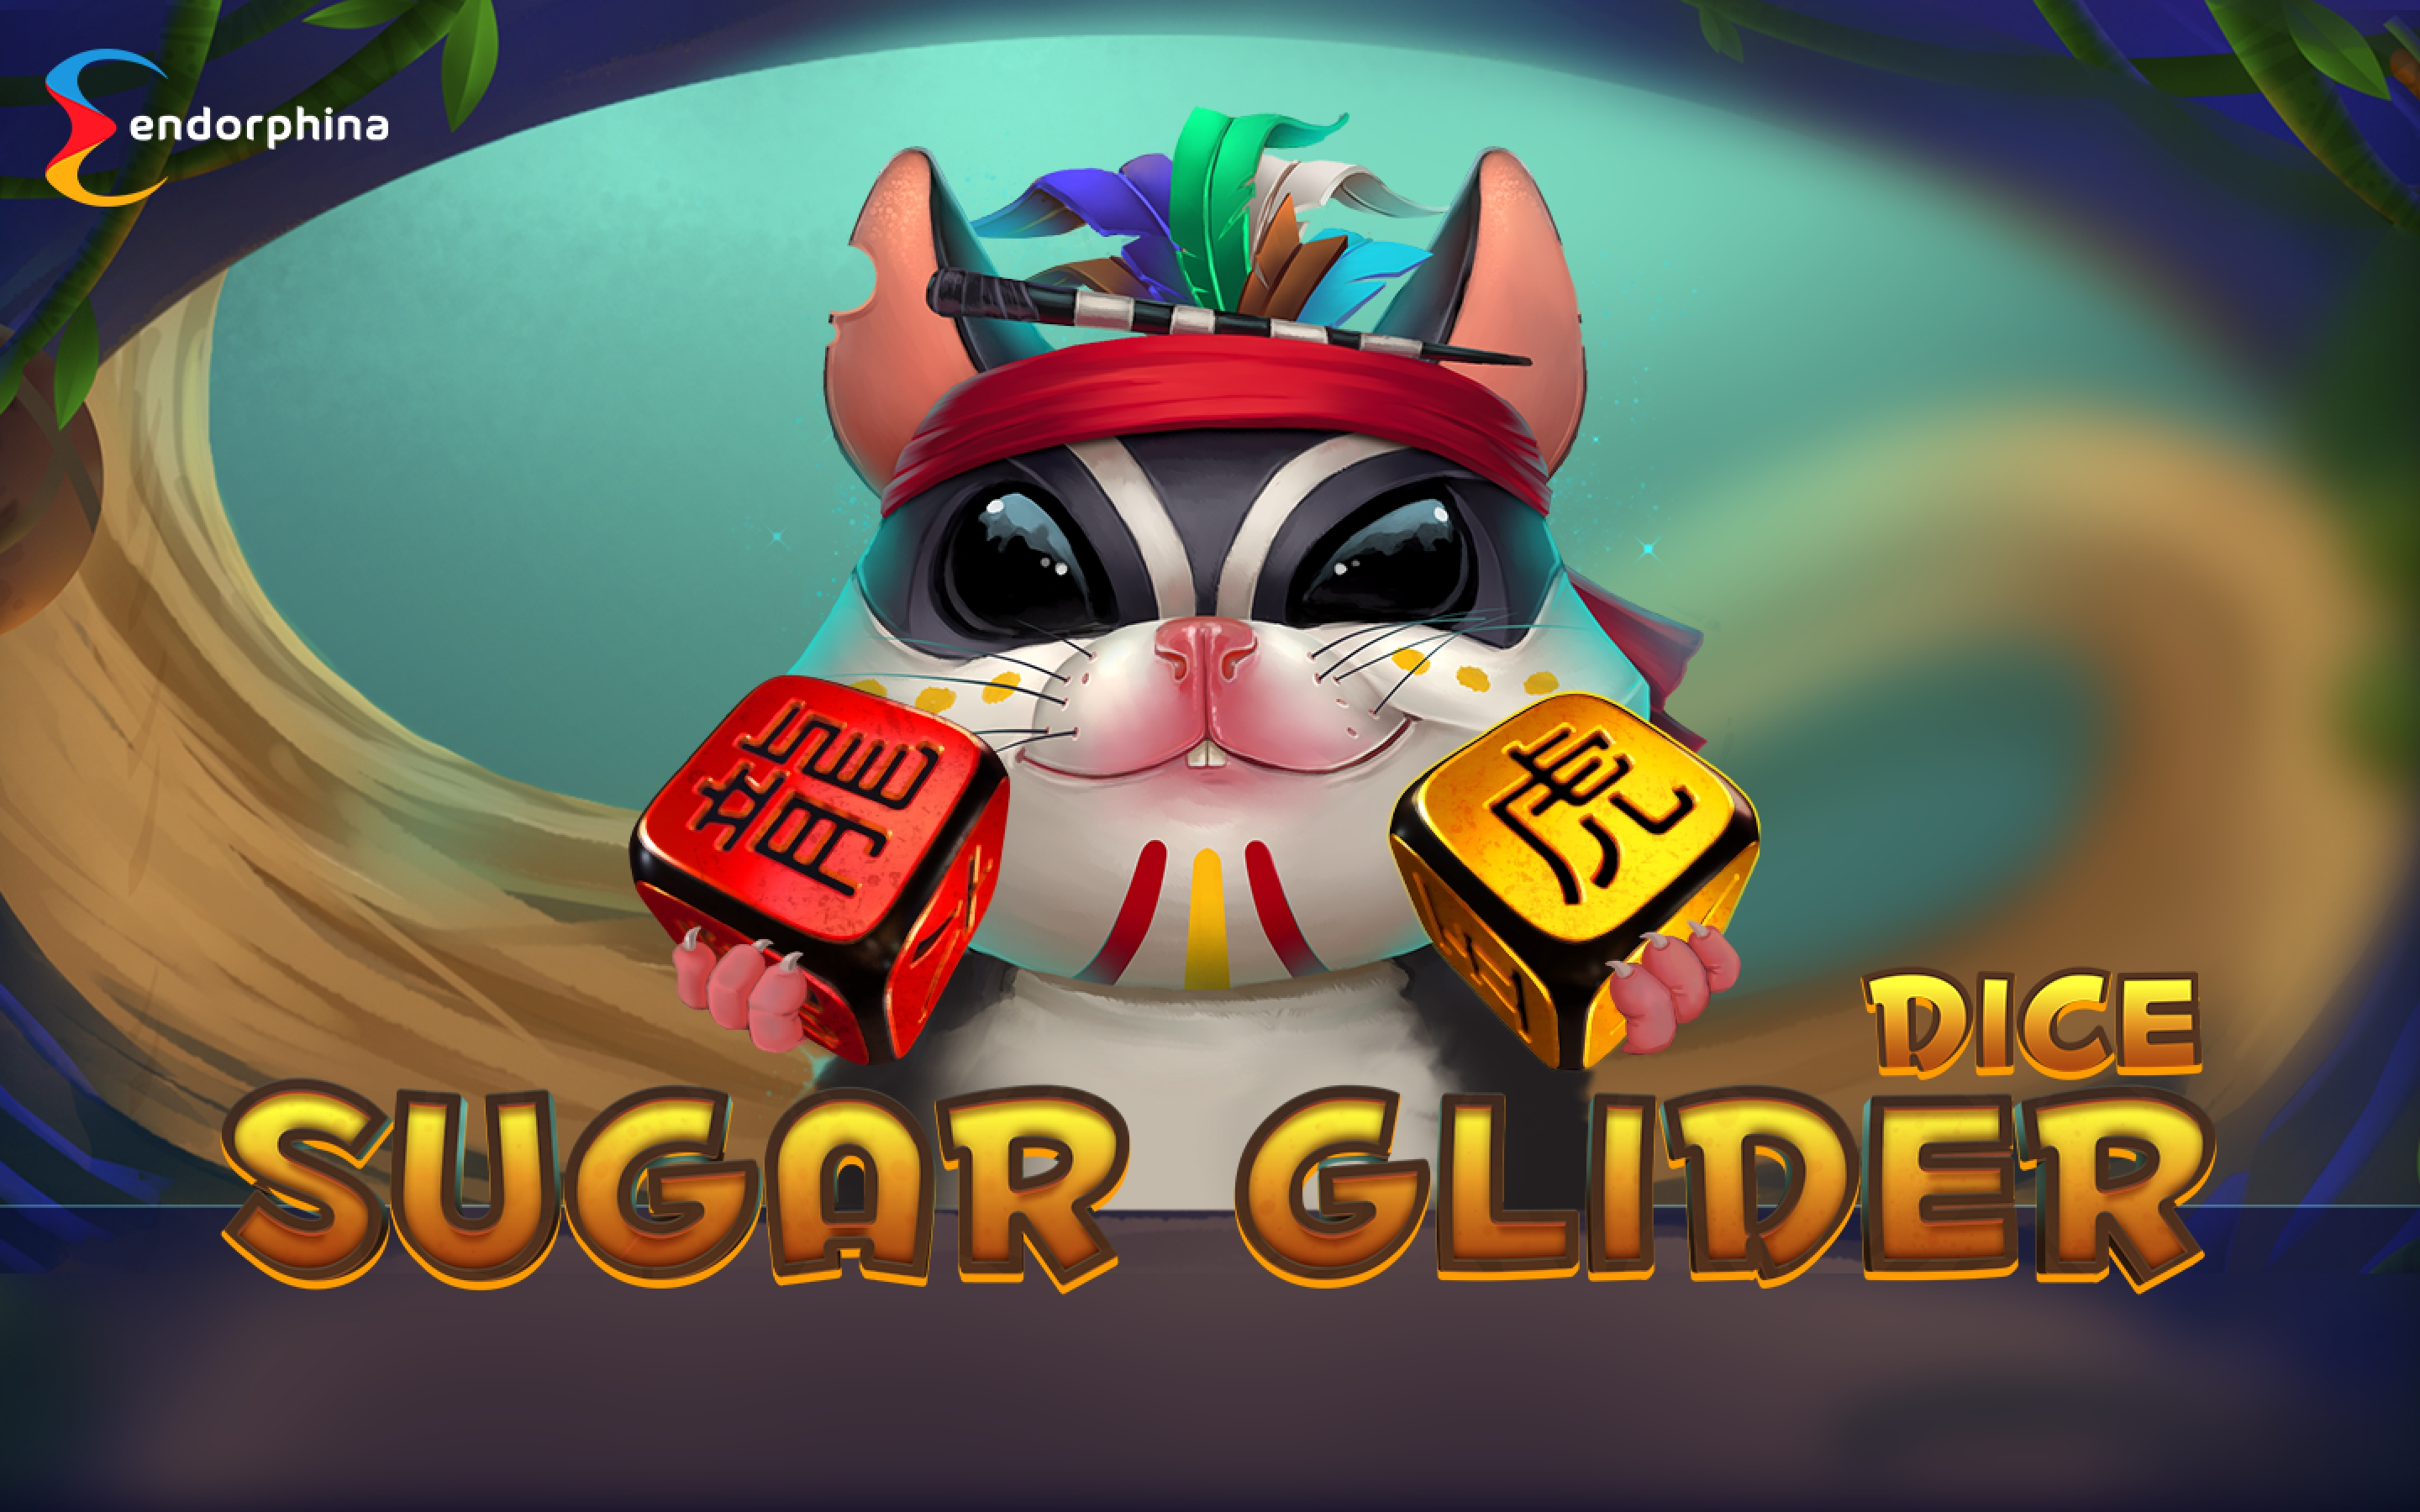 The Sugar Glider Dice Online Slot Demo Game by Endorphina